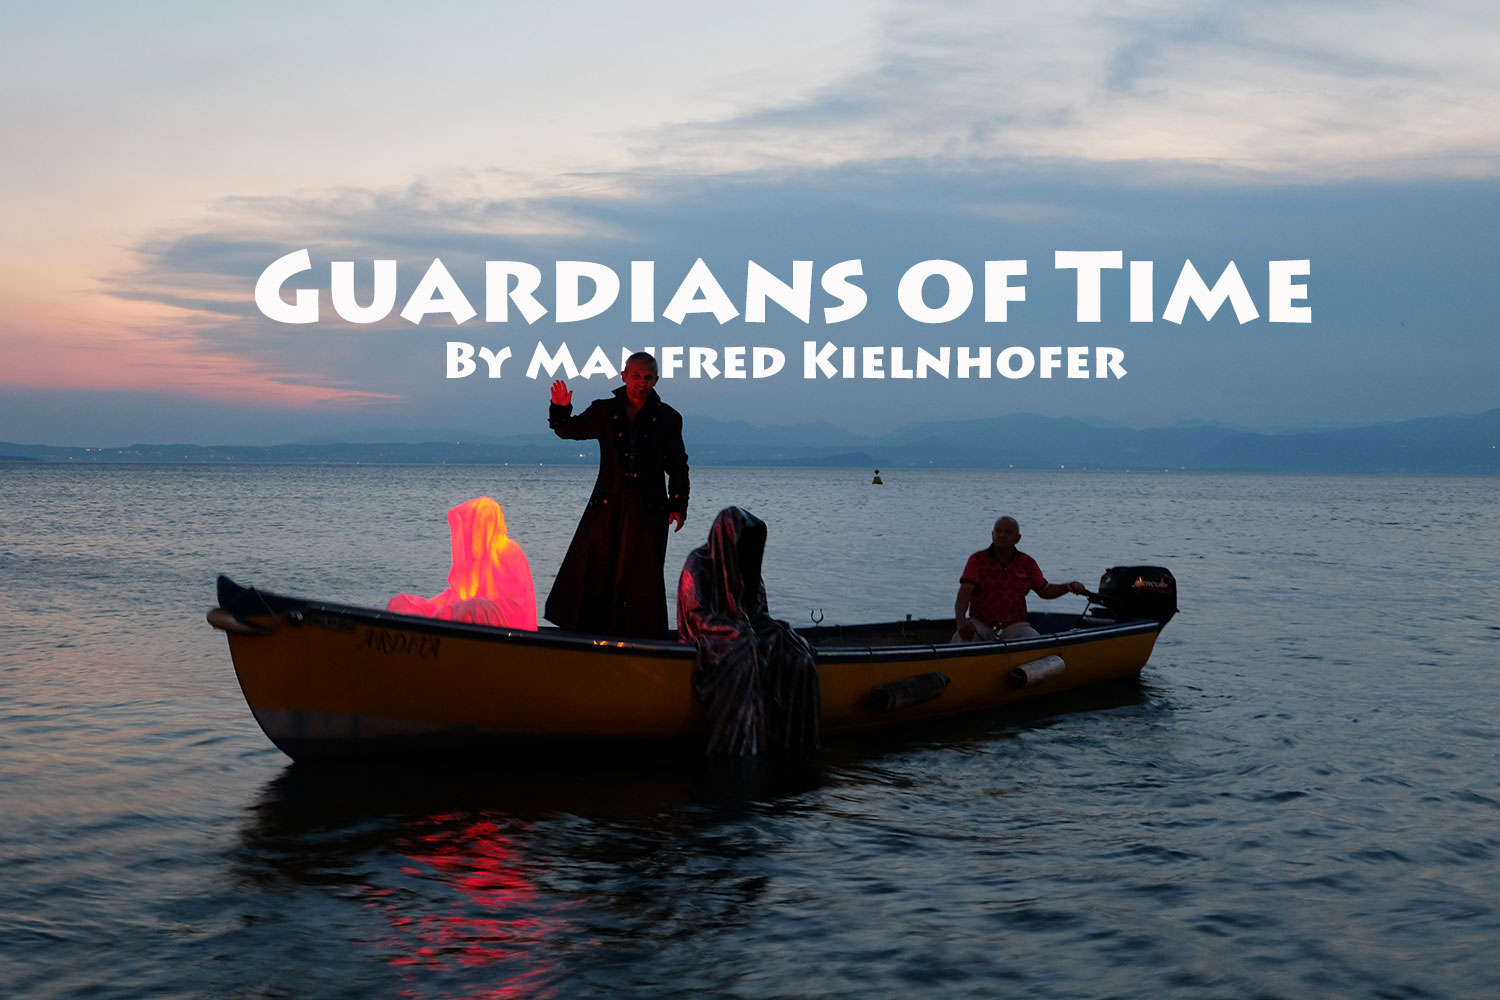 lazise-largo-de-guarda-italia--kouba-designkooperative-austria-guardians-of-time-manfred-kili-kielnhofer-contemporary-art-design-arts-arte-sculpture-theater-foto-film-performnce-avalon-ferryman-3813-